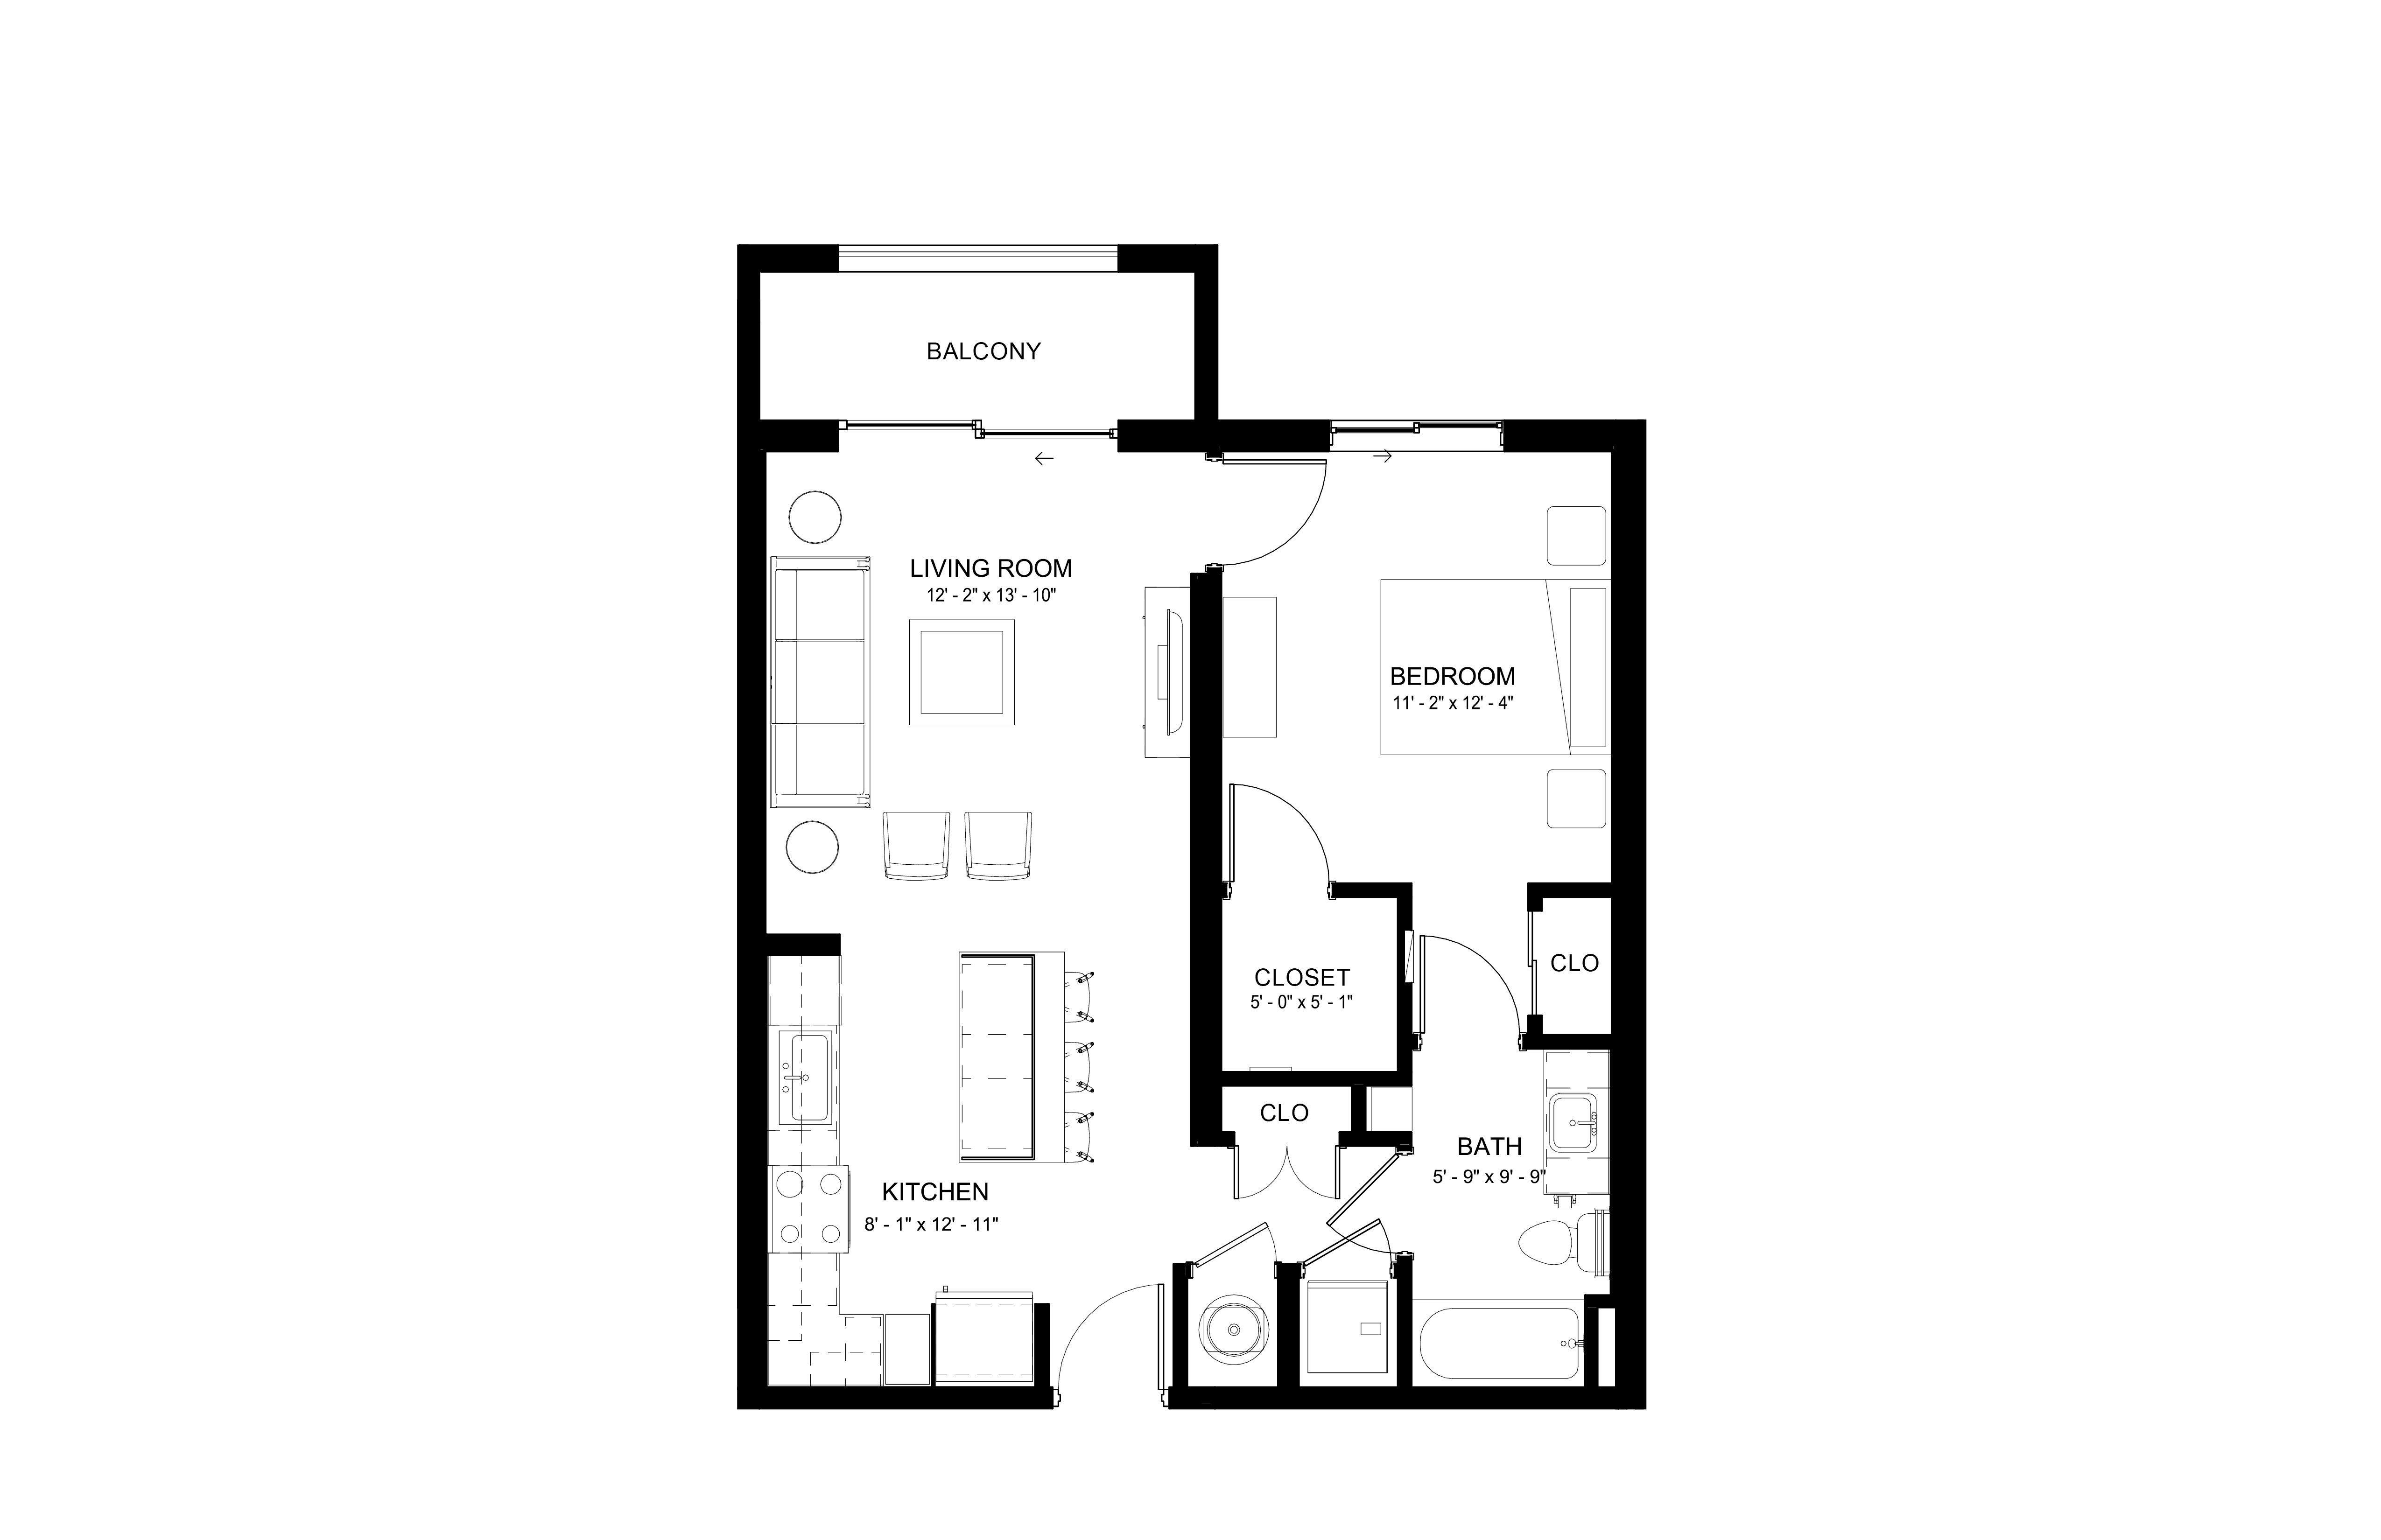 Apartment 238 floorplan